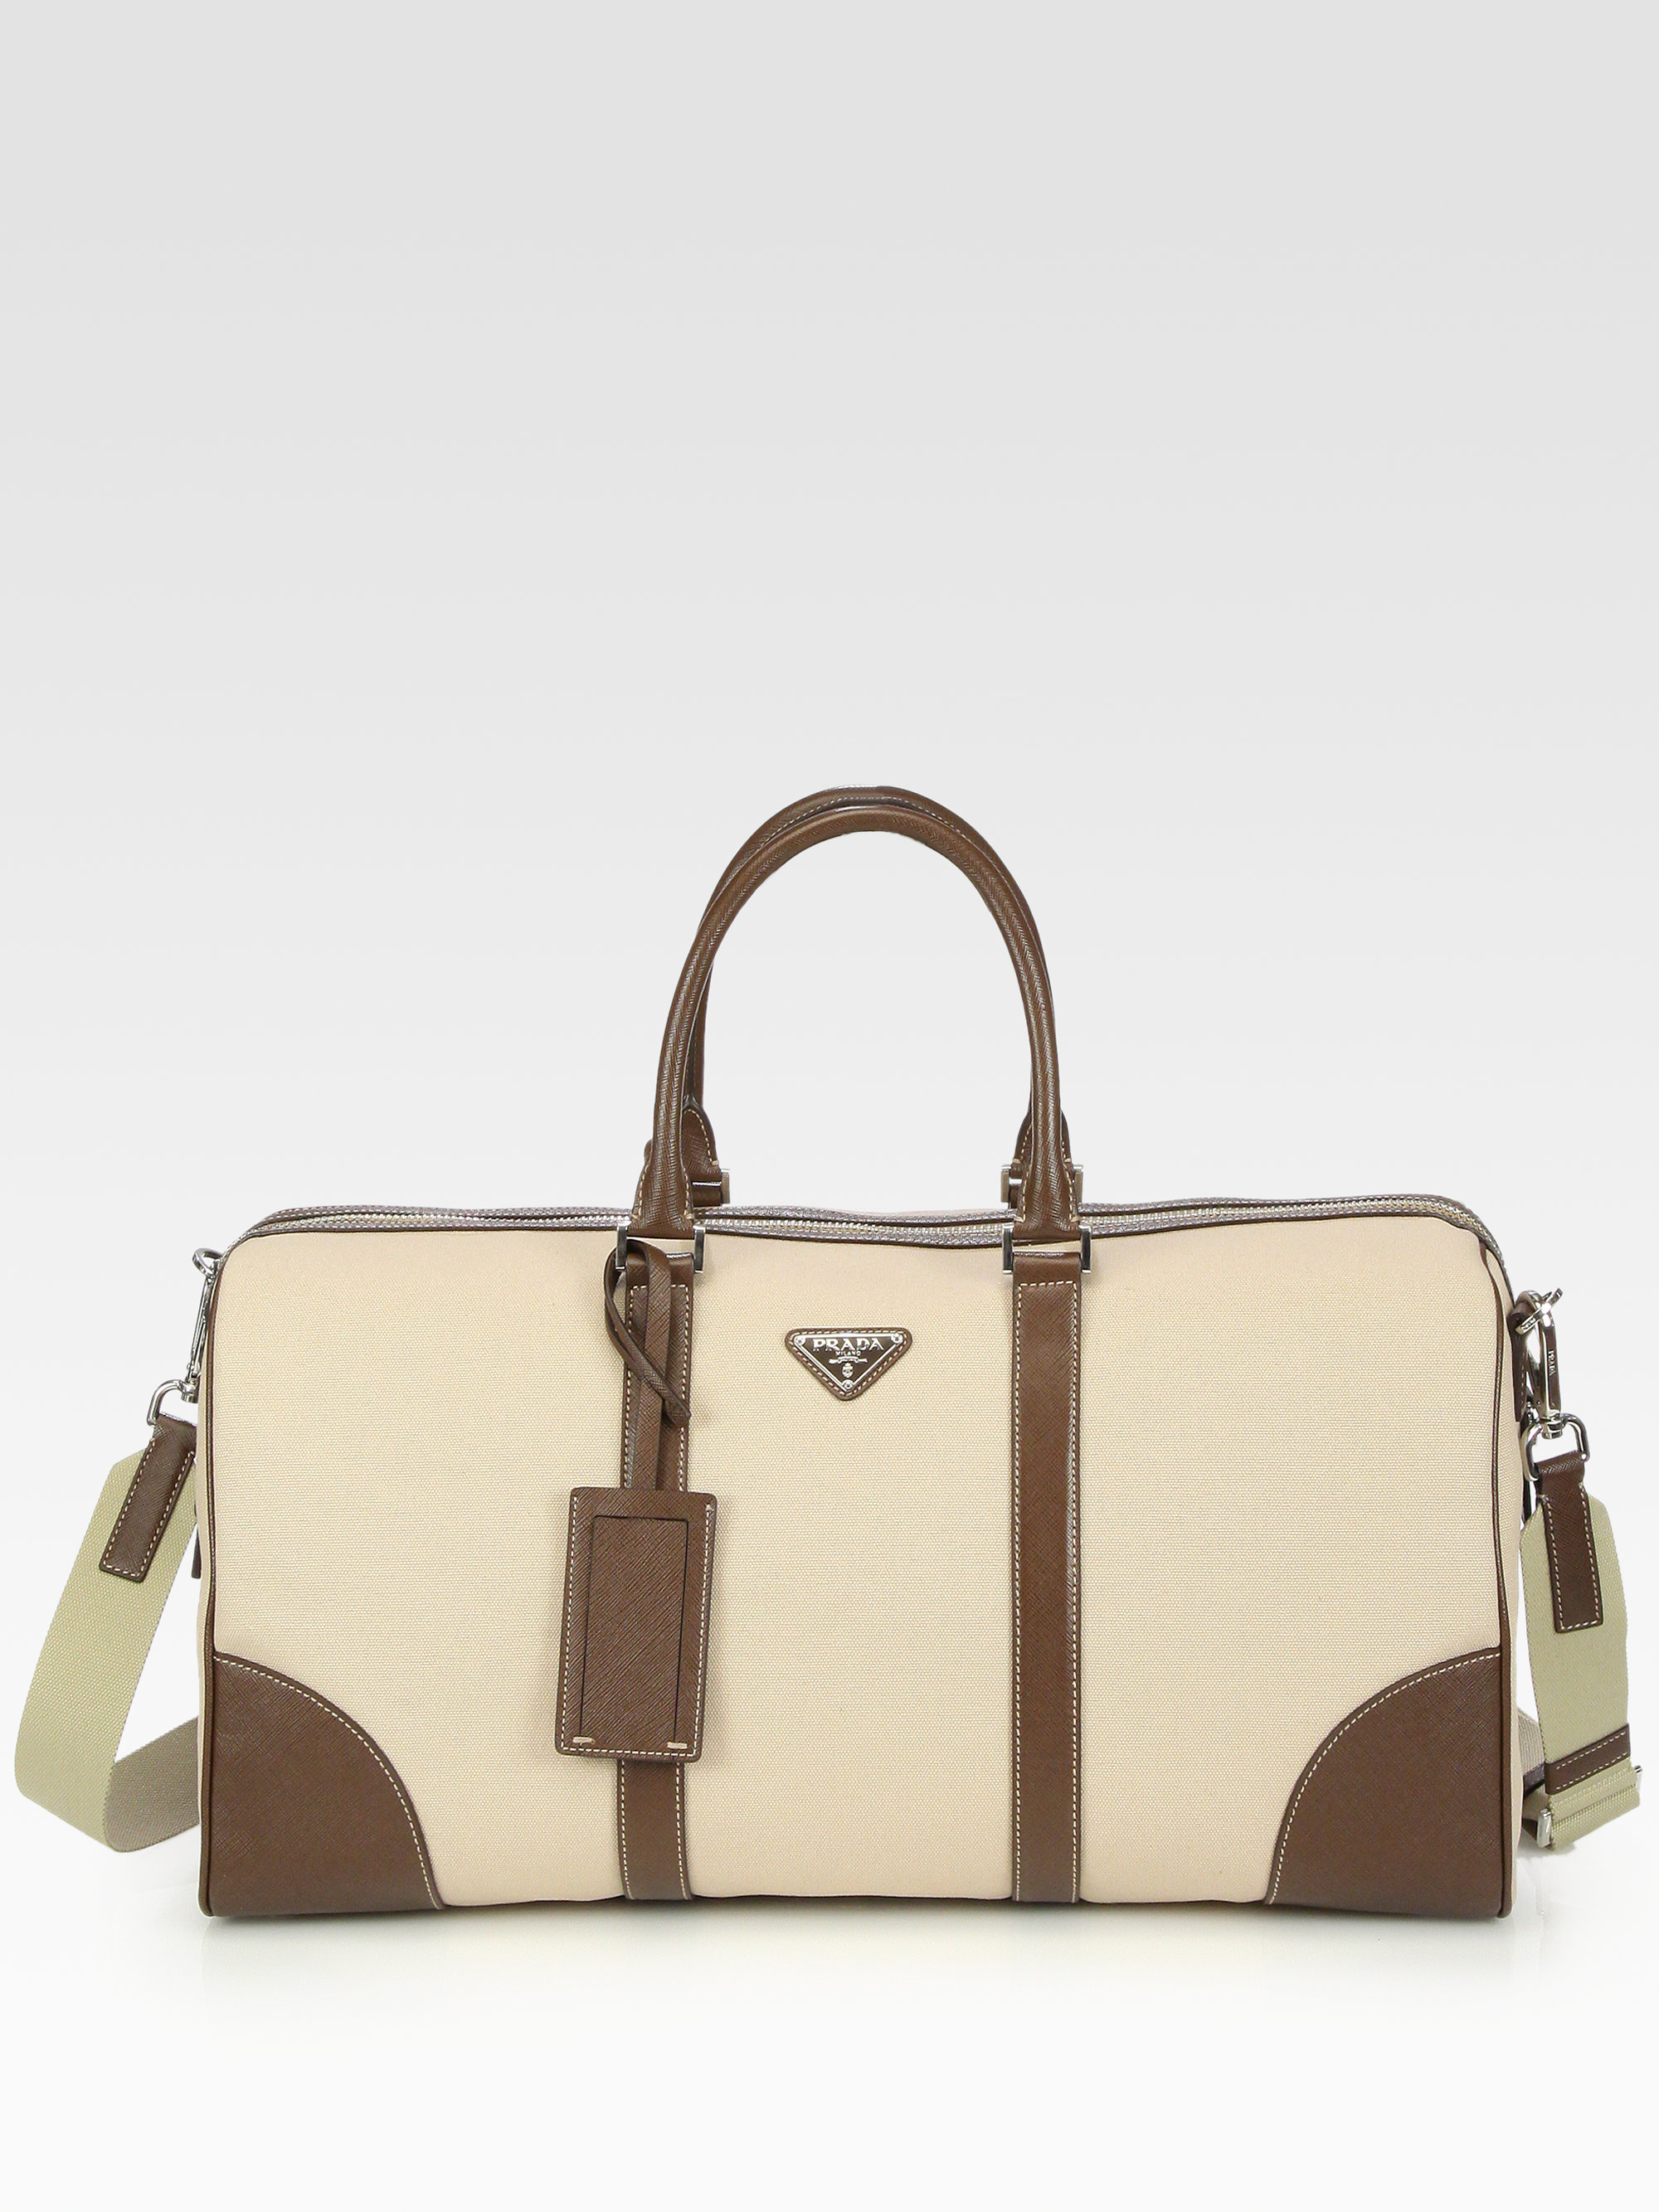 d615979da620 ... low cost lyst prada canvas and leather tote bag in natural for men  94542 5b7c0